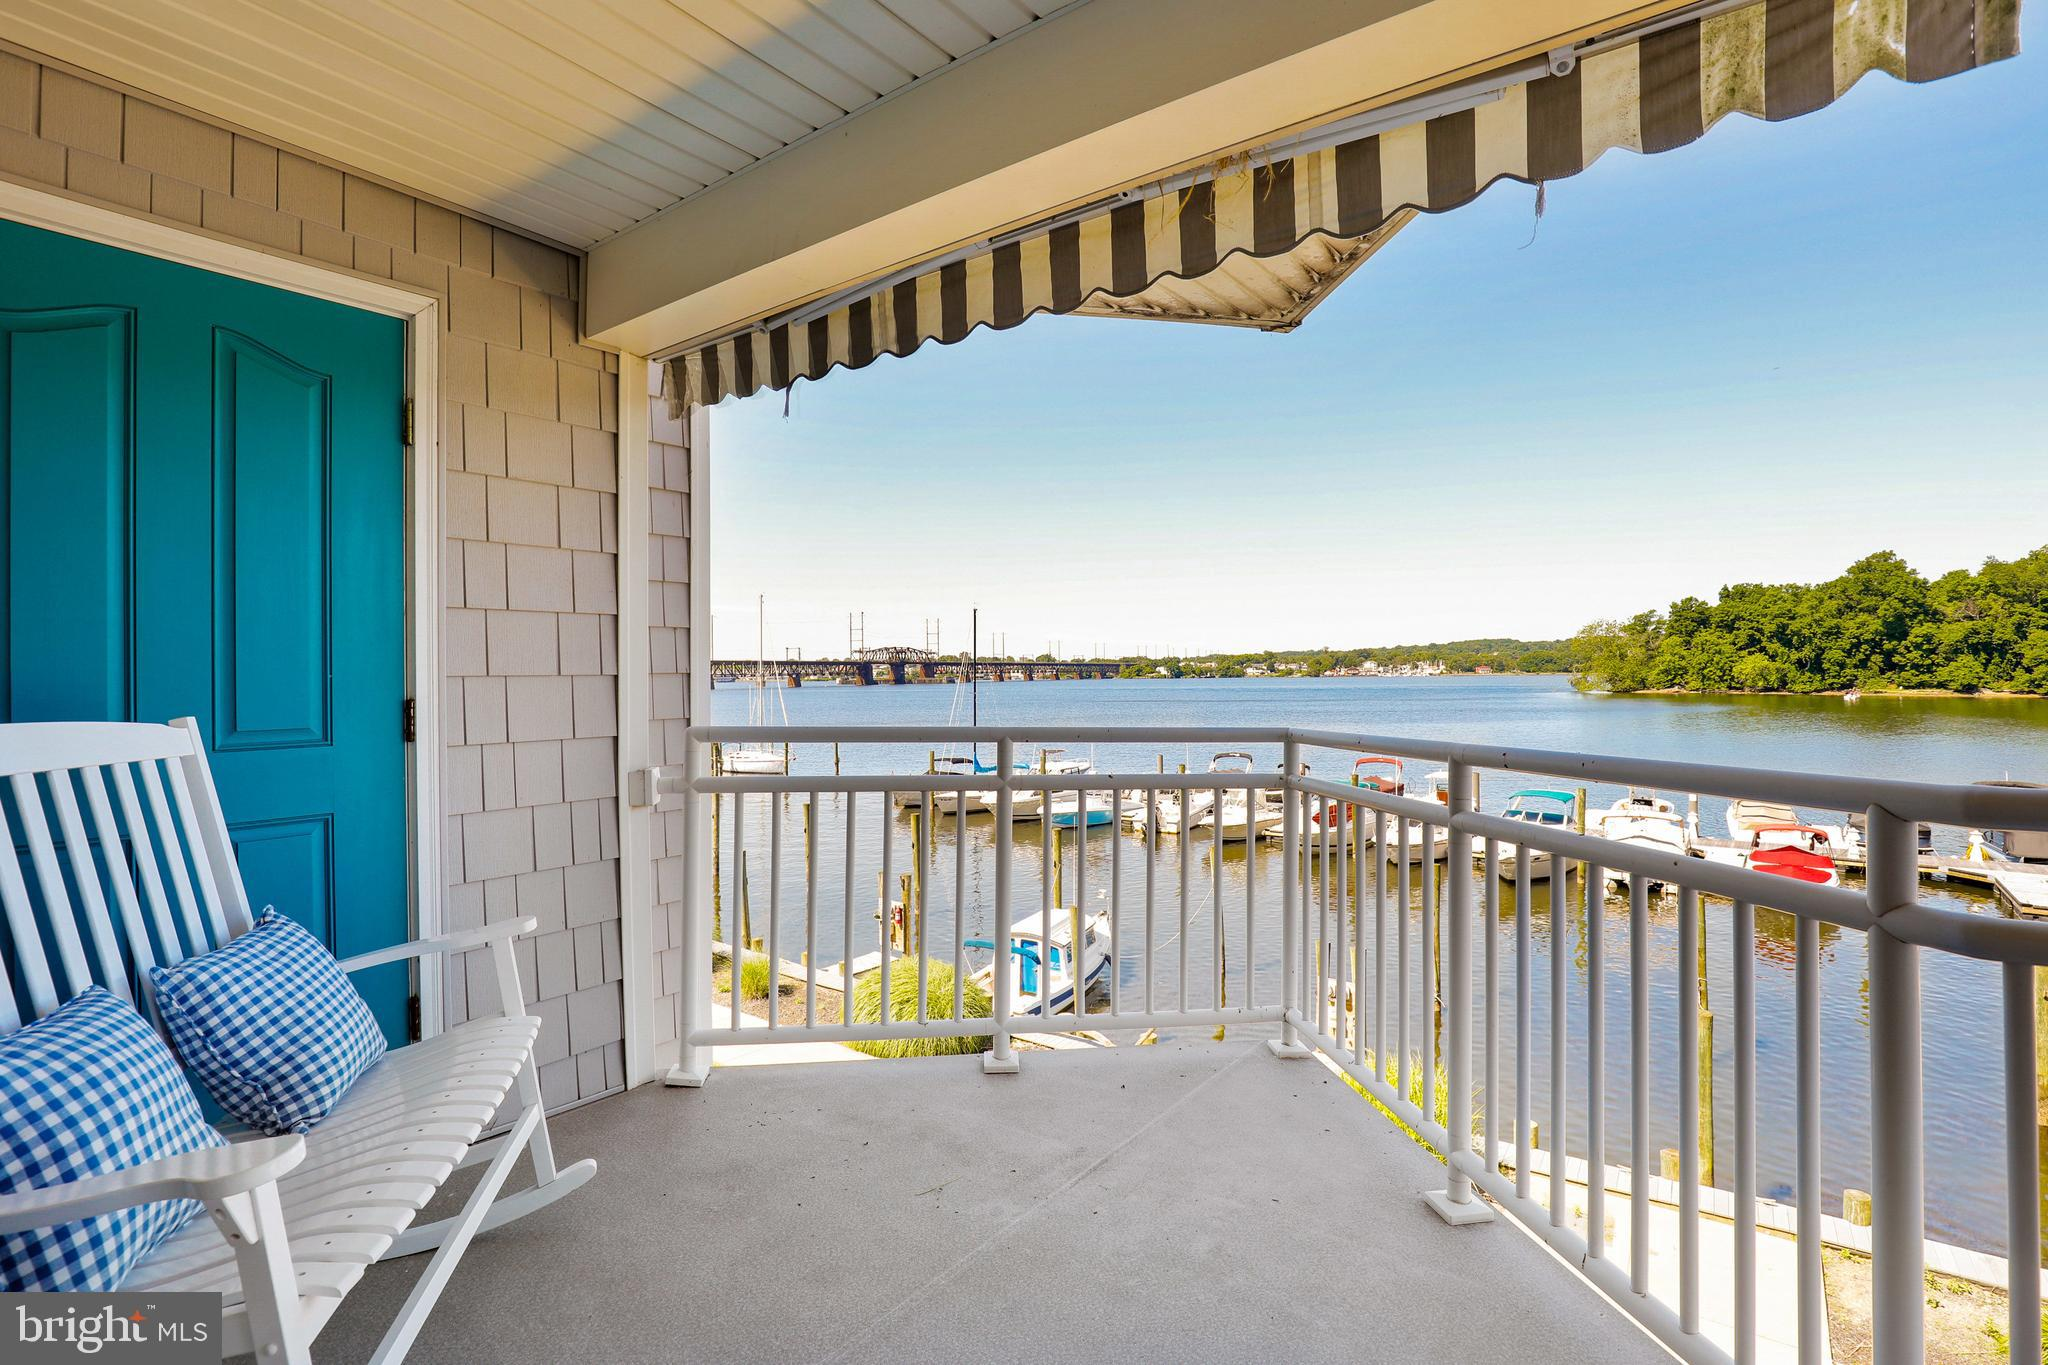 If you are looking at this new listing, it is your lucky day!  Drop everything and make an appt to see this gorgeous 2 bedroom, 2 full bath condo on the 2nd floor or stop by the open house this Sat.  (June 19th) from 11am to 1pm.   Why not spoil yourself and your loved ones?  This waterfront home comes fully furnished with a gas fireplace, dishes, glasses, bedding, and 2 newer bicycles.   There are 2 storage units on the balcony, 2 pantries in the kitchen, a walk-in closet in the primary bedroom, a large soaking tub in the primary bathroom,  water views, and balcony access from the 2nd bedroom.  This condo is steps away from a boat ramp and docks (privately owned and can be leased).  A pool membership can also be purchased.  There is a nearby bike and walking trail.  There is a public boat ramp with lots of parking a few miles away.  Soon, you will be able to enjoy the new tiki bar and marina which will be seconds from your doorstep.   This home = biking, boating,  swimming in the community pool, watching boats go by from your waterfront balcony, soaking in the large tub, relaxing by the gas fireplace, waking up to views of the  Susquehanna River then repeat!  You are not dreaming.  Buy now and make this your reality.